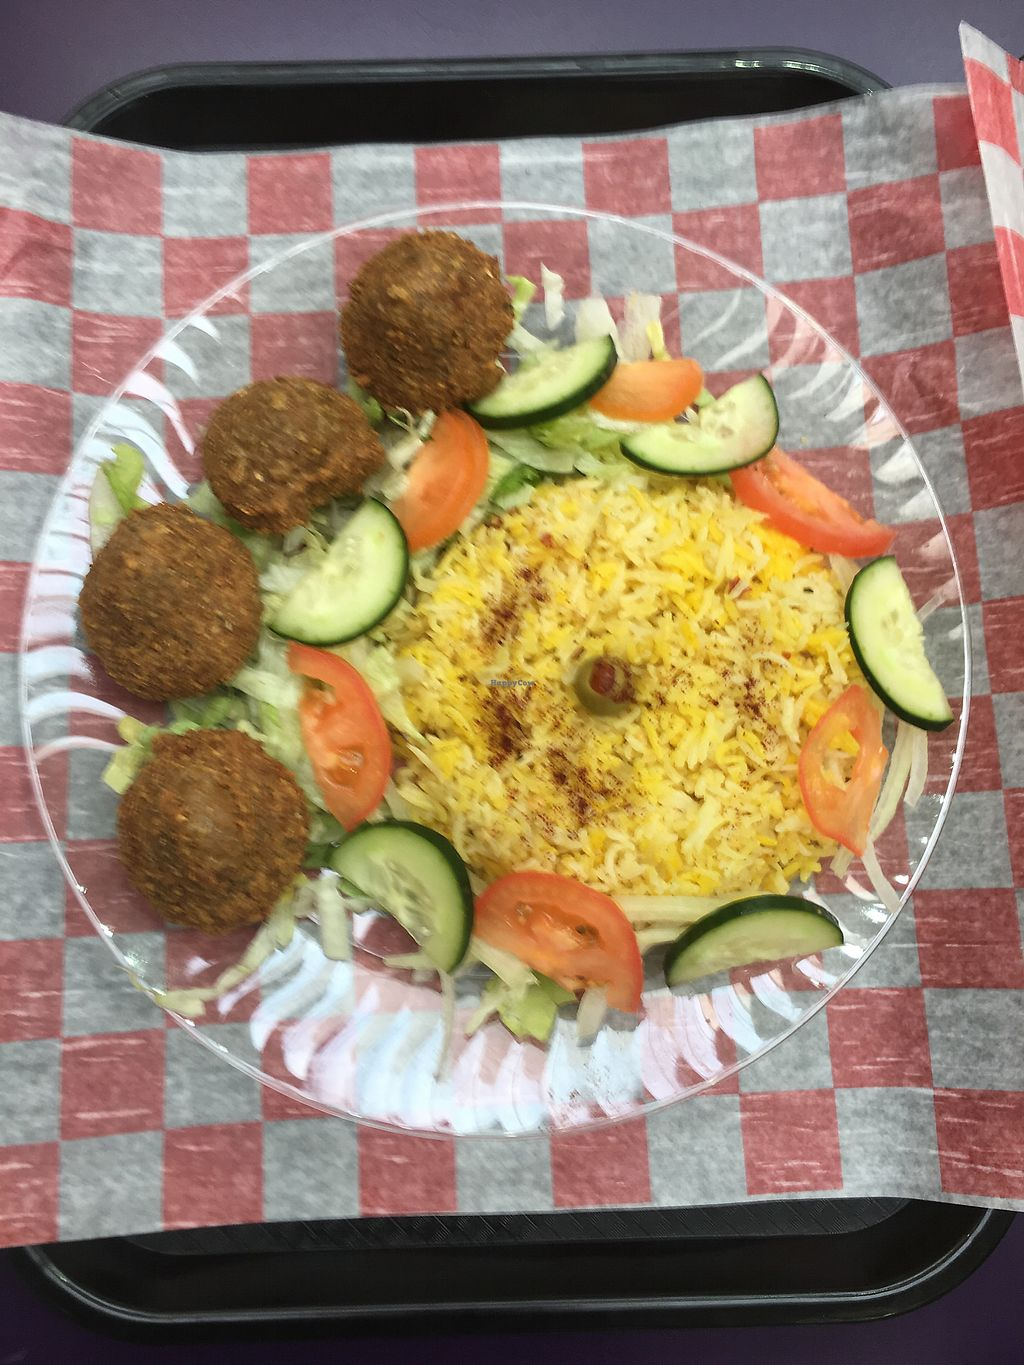 """Photo of Lazize  by <a href=""""/members/profile/ccampbel"""">ccampbel</a> <br/>Custom rice dish <br/> January 7, 2018  - <a href='/contact/abuse/image/108521/344046'>Report</a>"""